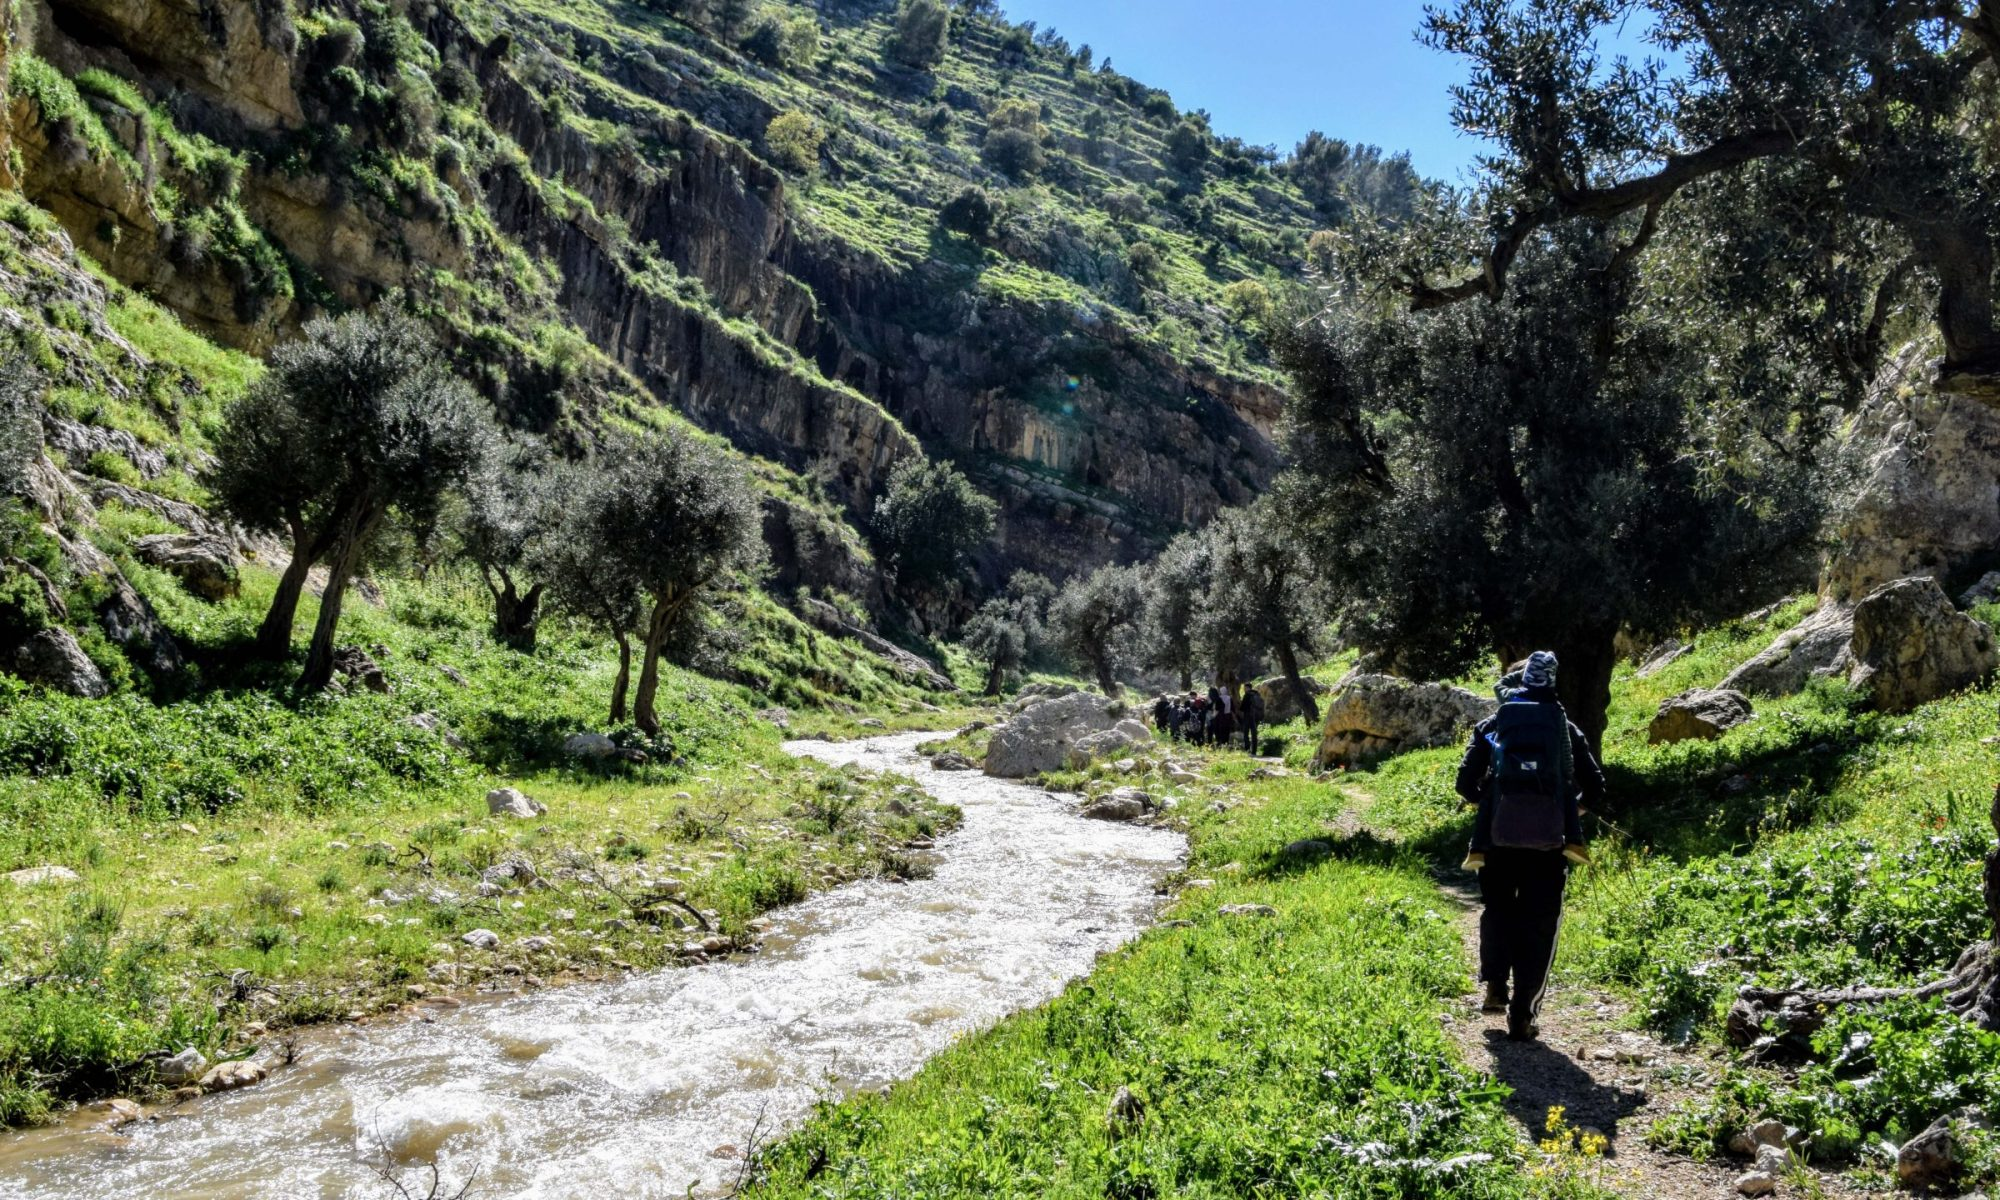 hikers going along a creek through a valley with olive trees and mountains